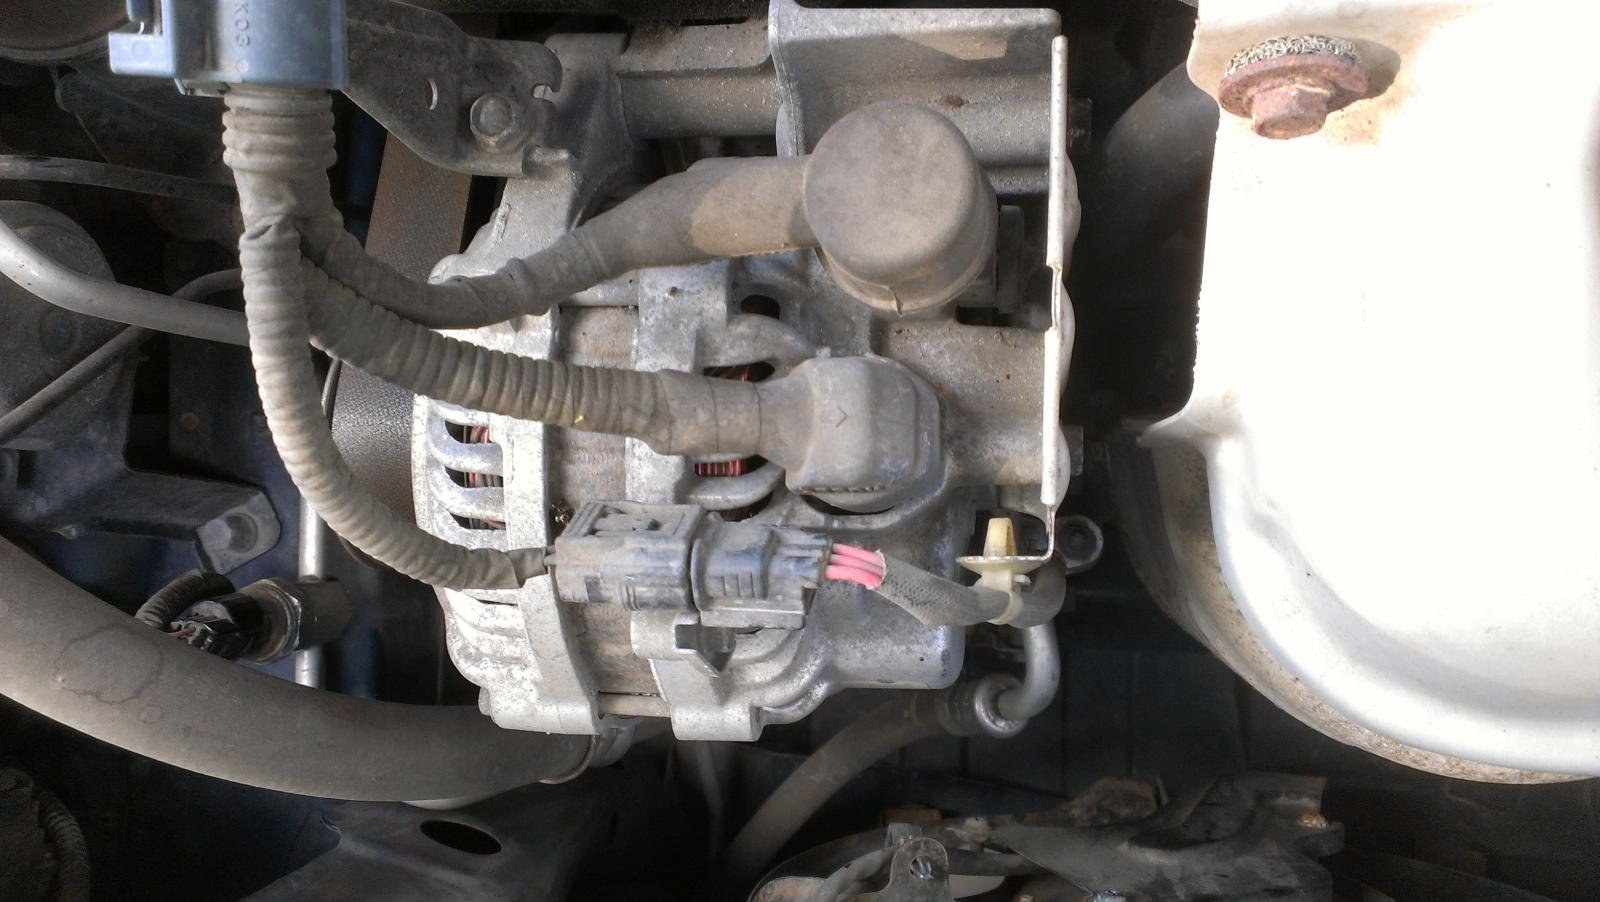 50328d1341876017 2007 civic c compressor wont kick imag0253 2007 civic a c compressor won't kick on 8th generation honda 2006 honda civic hybrid wiring diagram at bakdesigns.co